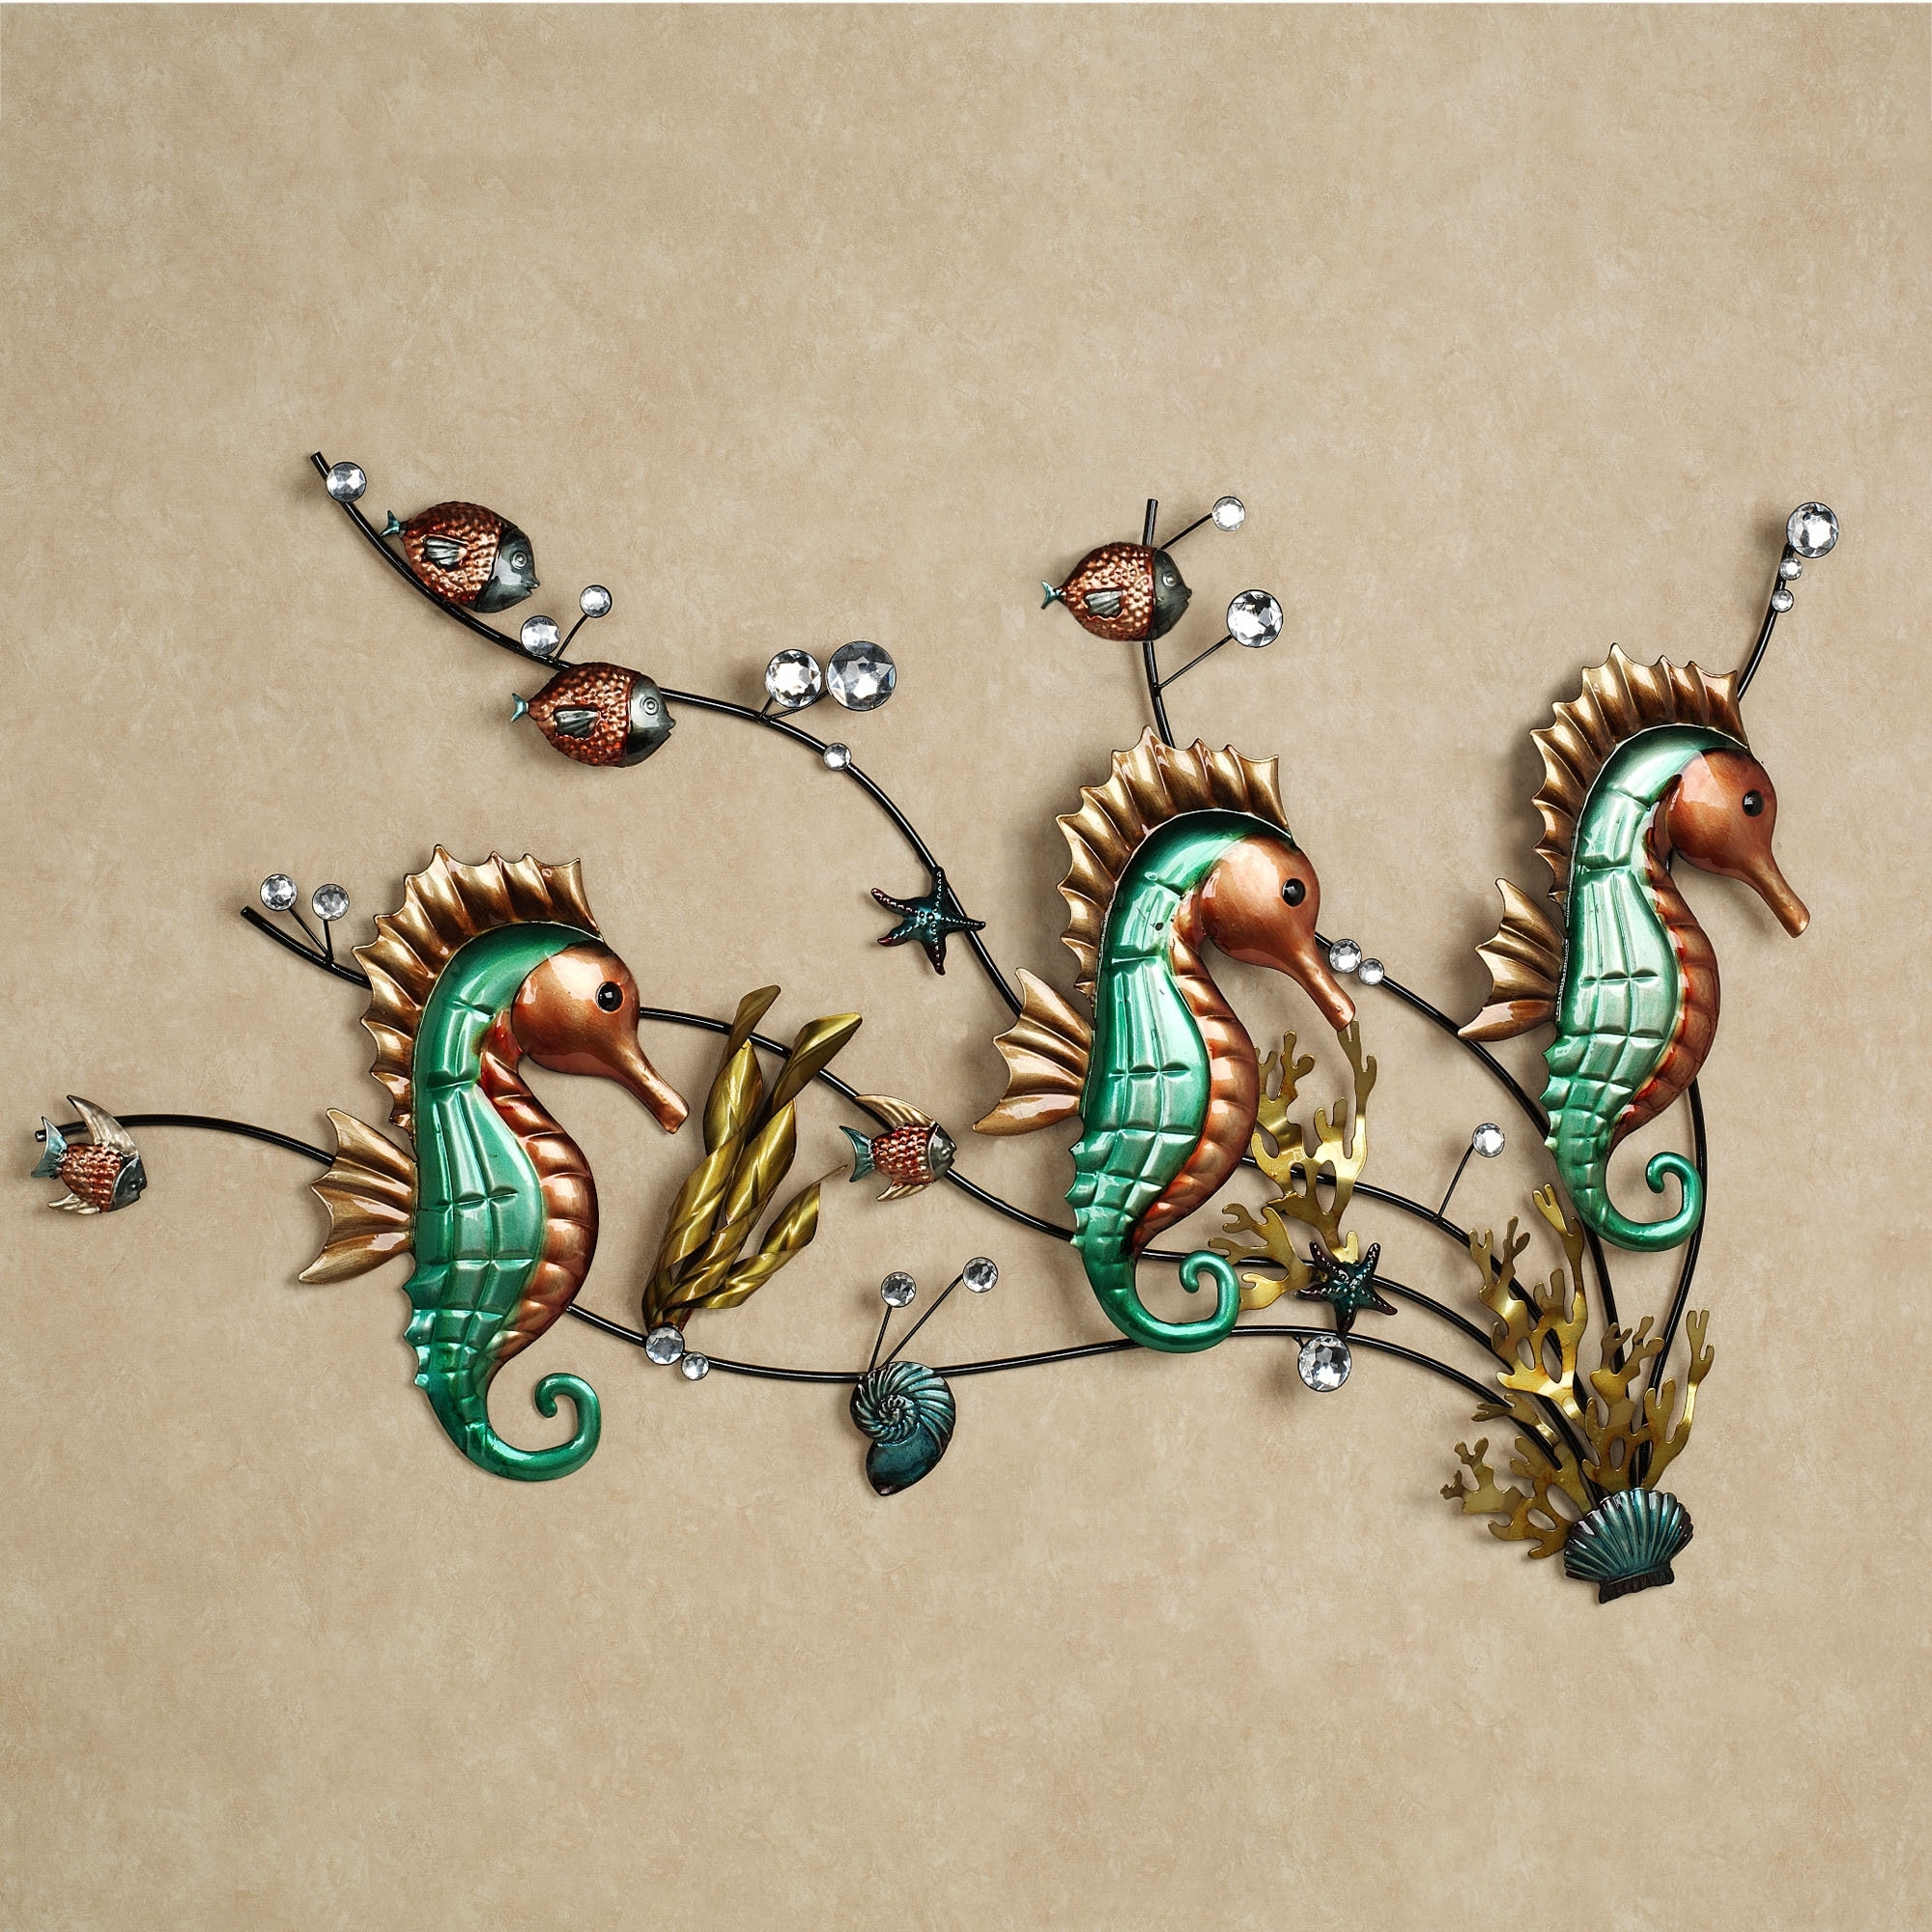 Home Aquatic Friends Wall Art Sculpture Pertaining To Well Liked Sea Horse Wall Art (Gallery 8 of 15)